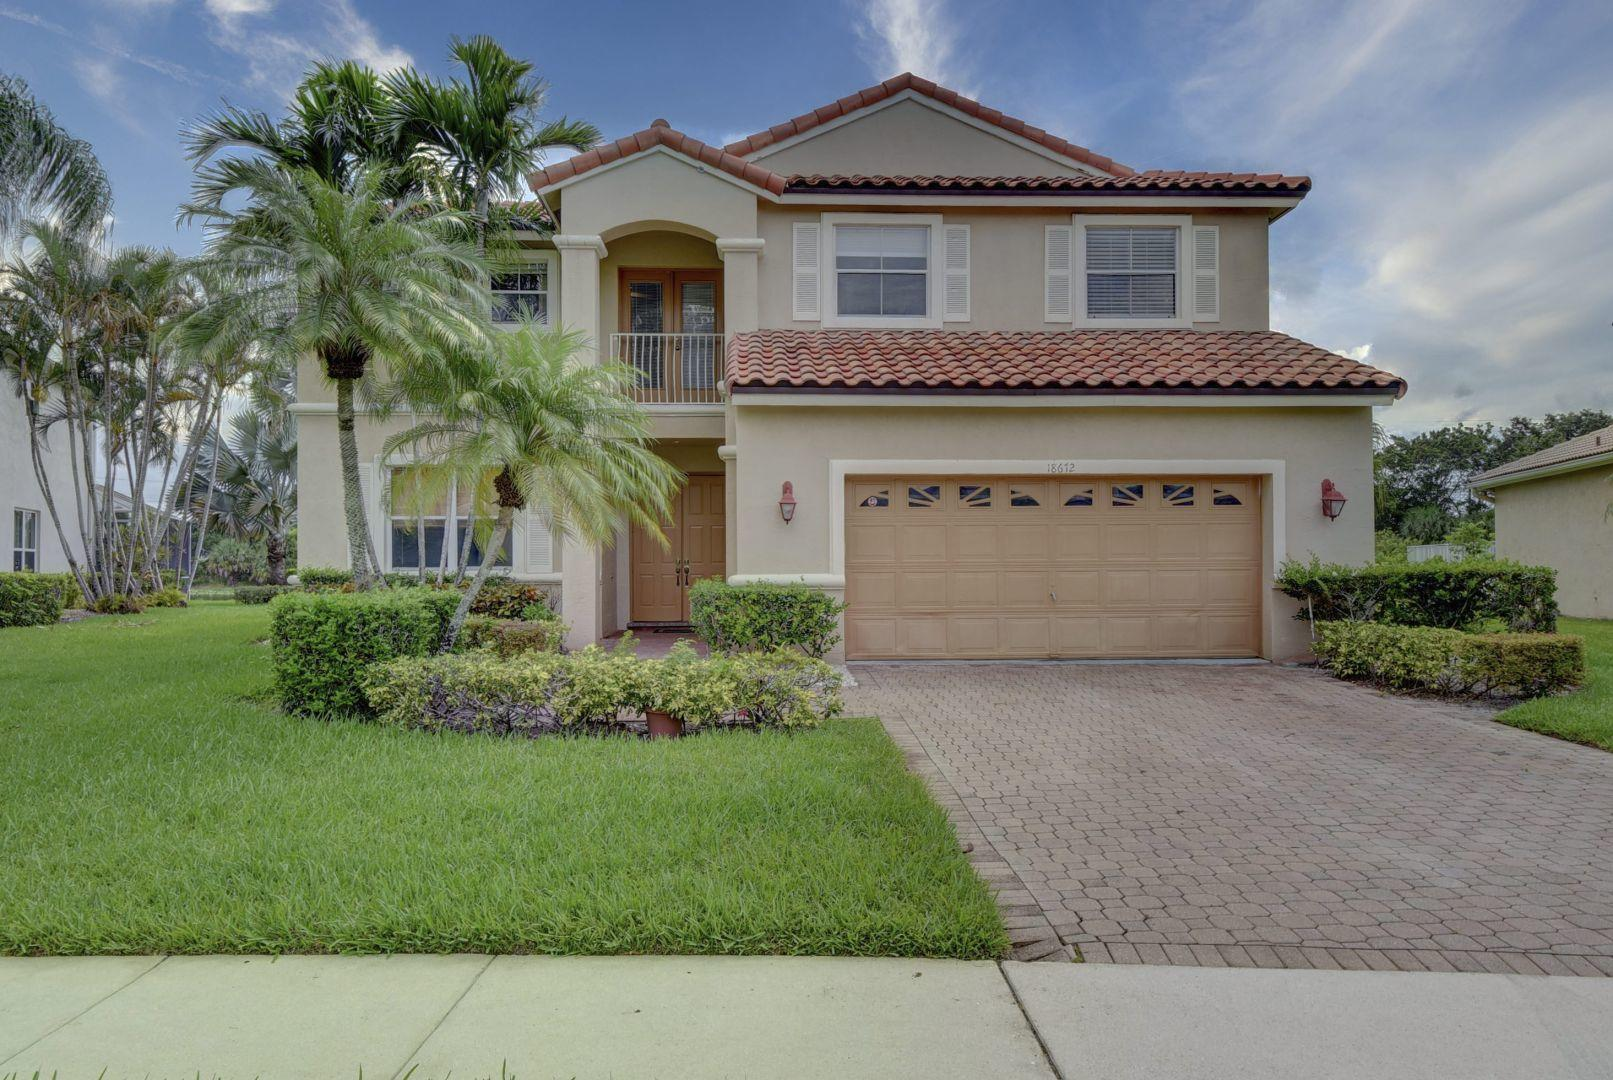 Photo of 18672 Sea Turtle Lane Lane, Boca Raton, FL 33498